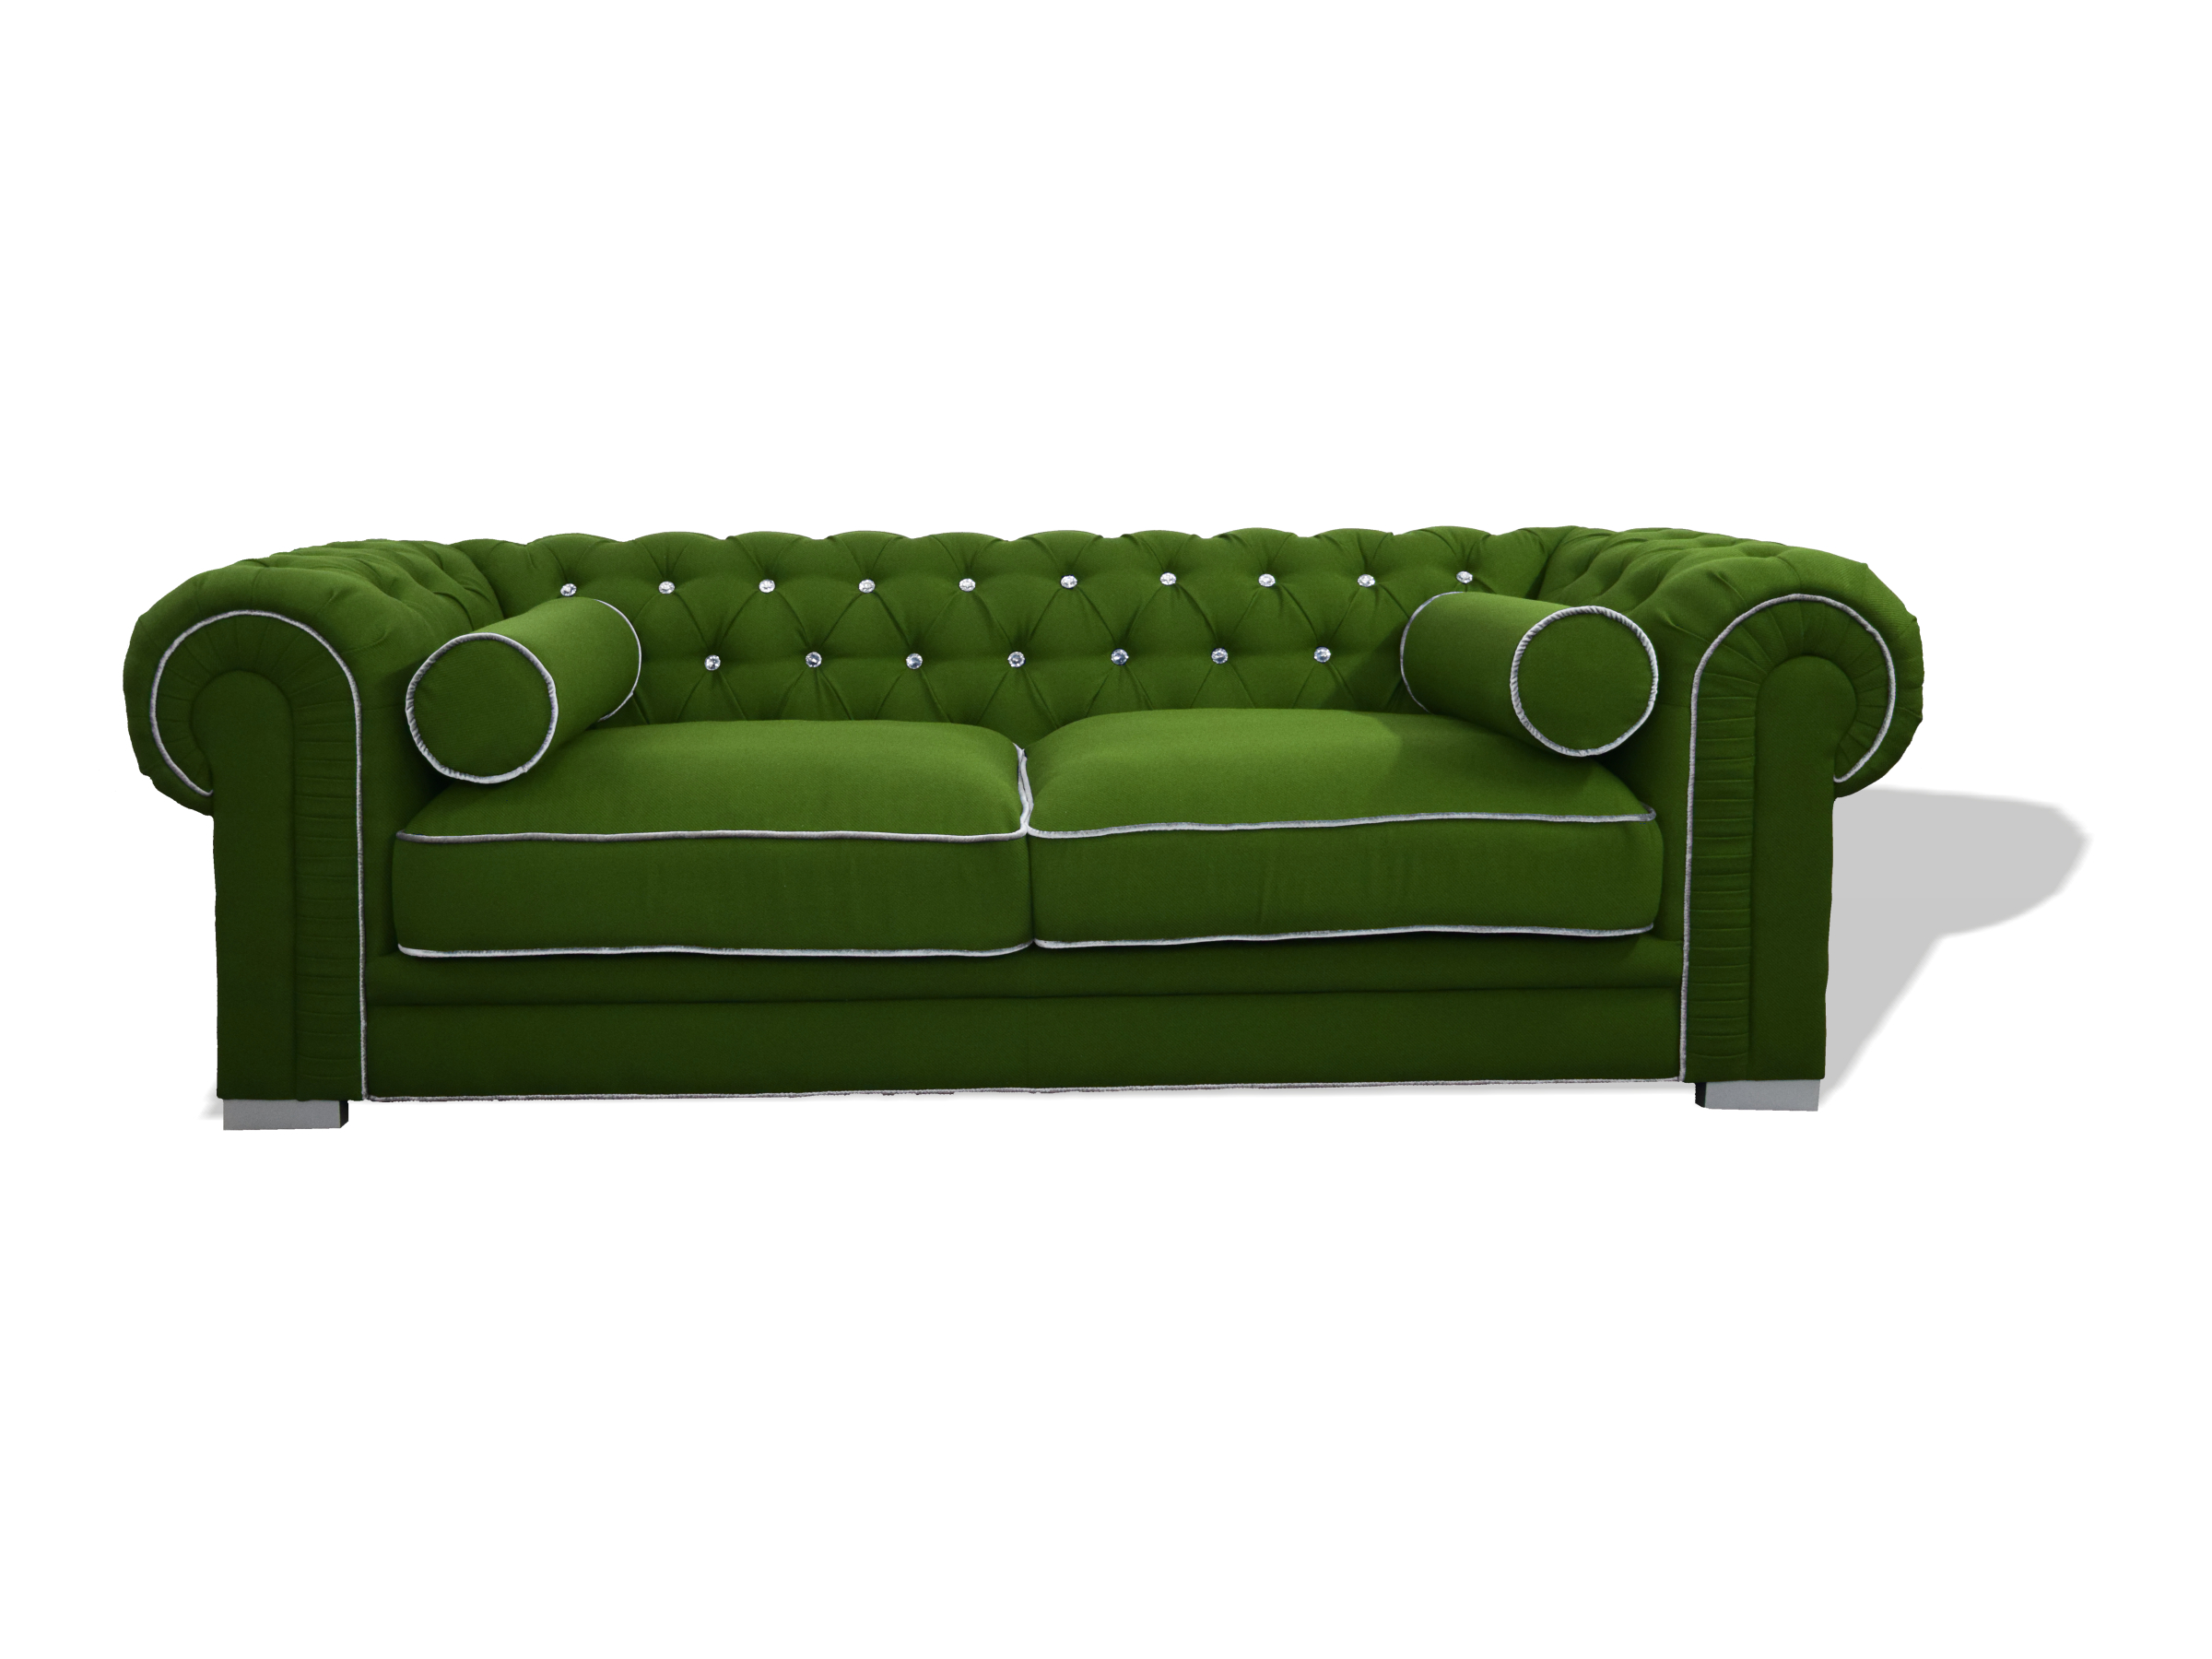 Couchtisch Chesterfield Chesterfield Sessel Braun Mokka Leder